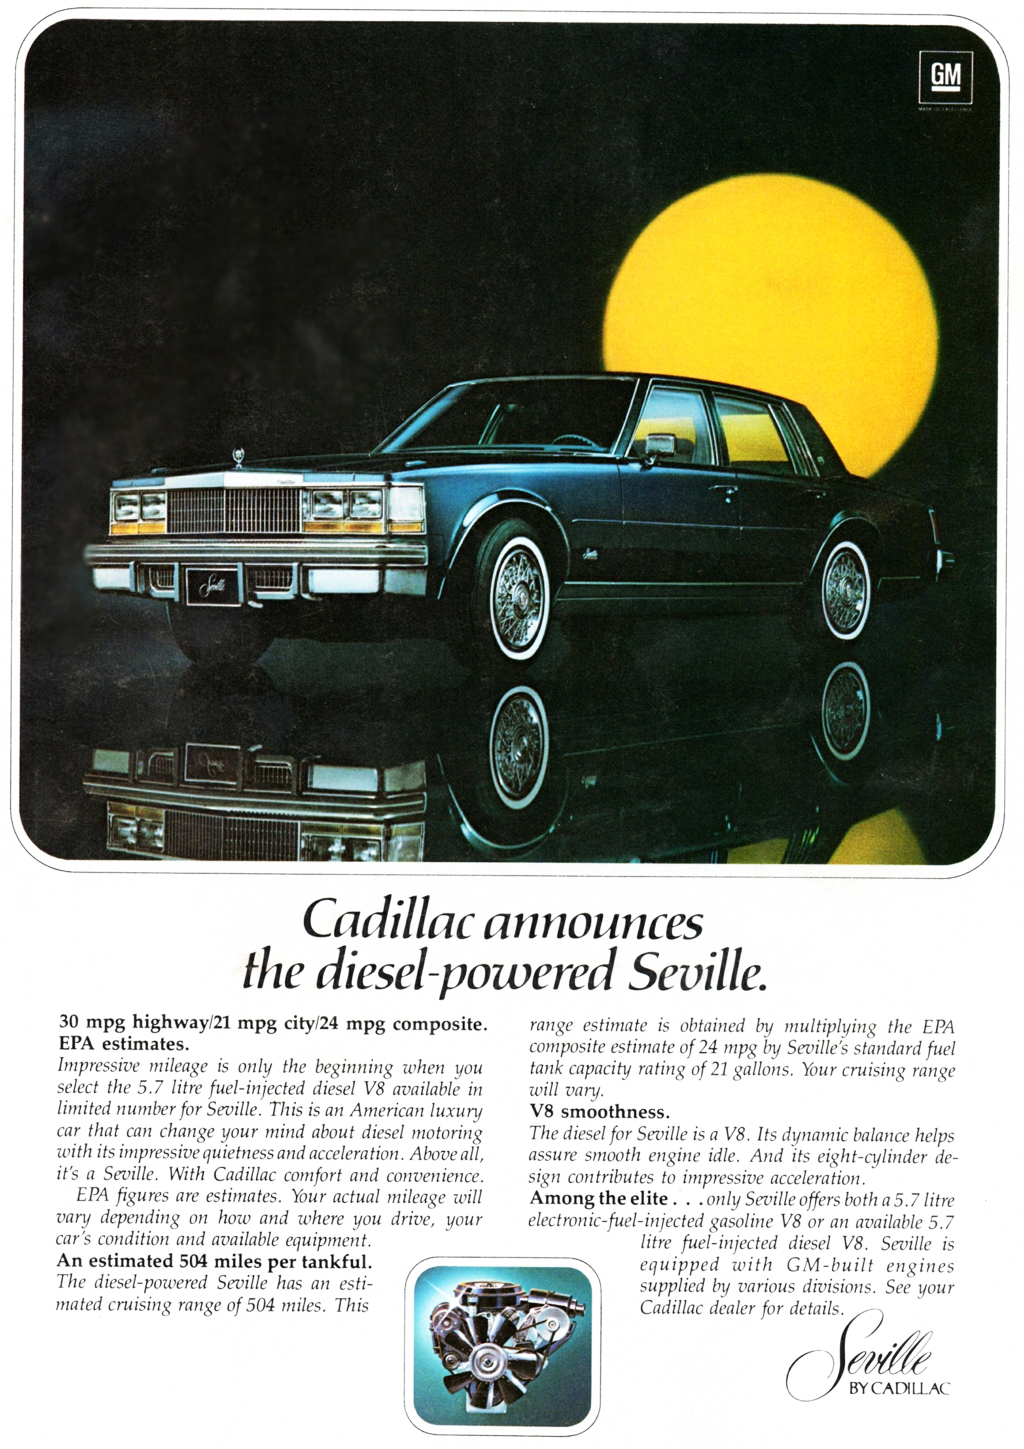 1978 Cadillac Seville Diesel Ad Classic Cars Today Online